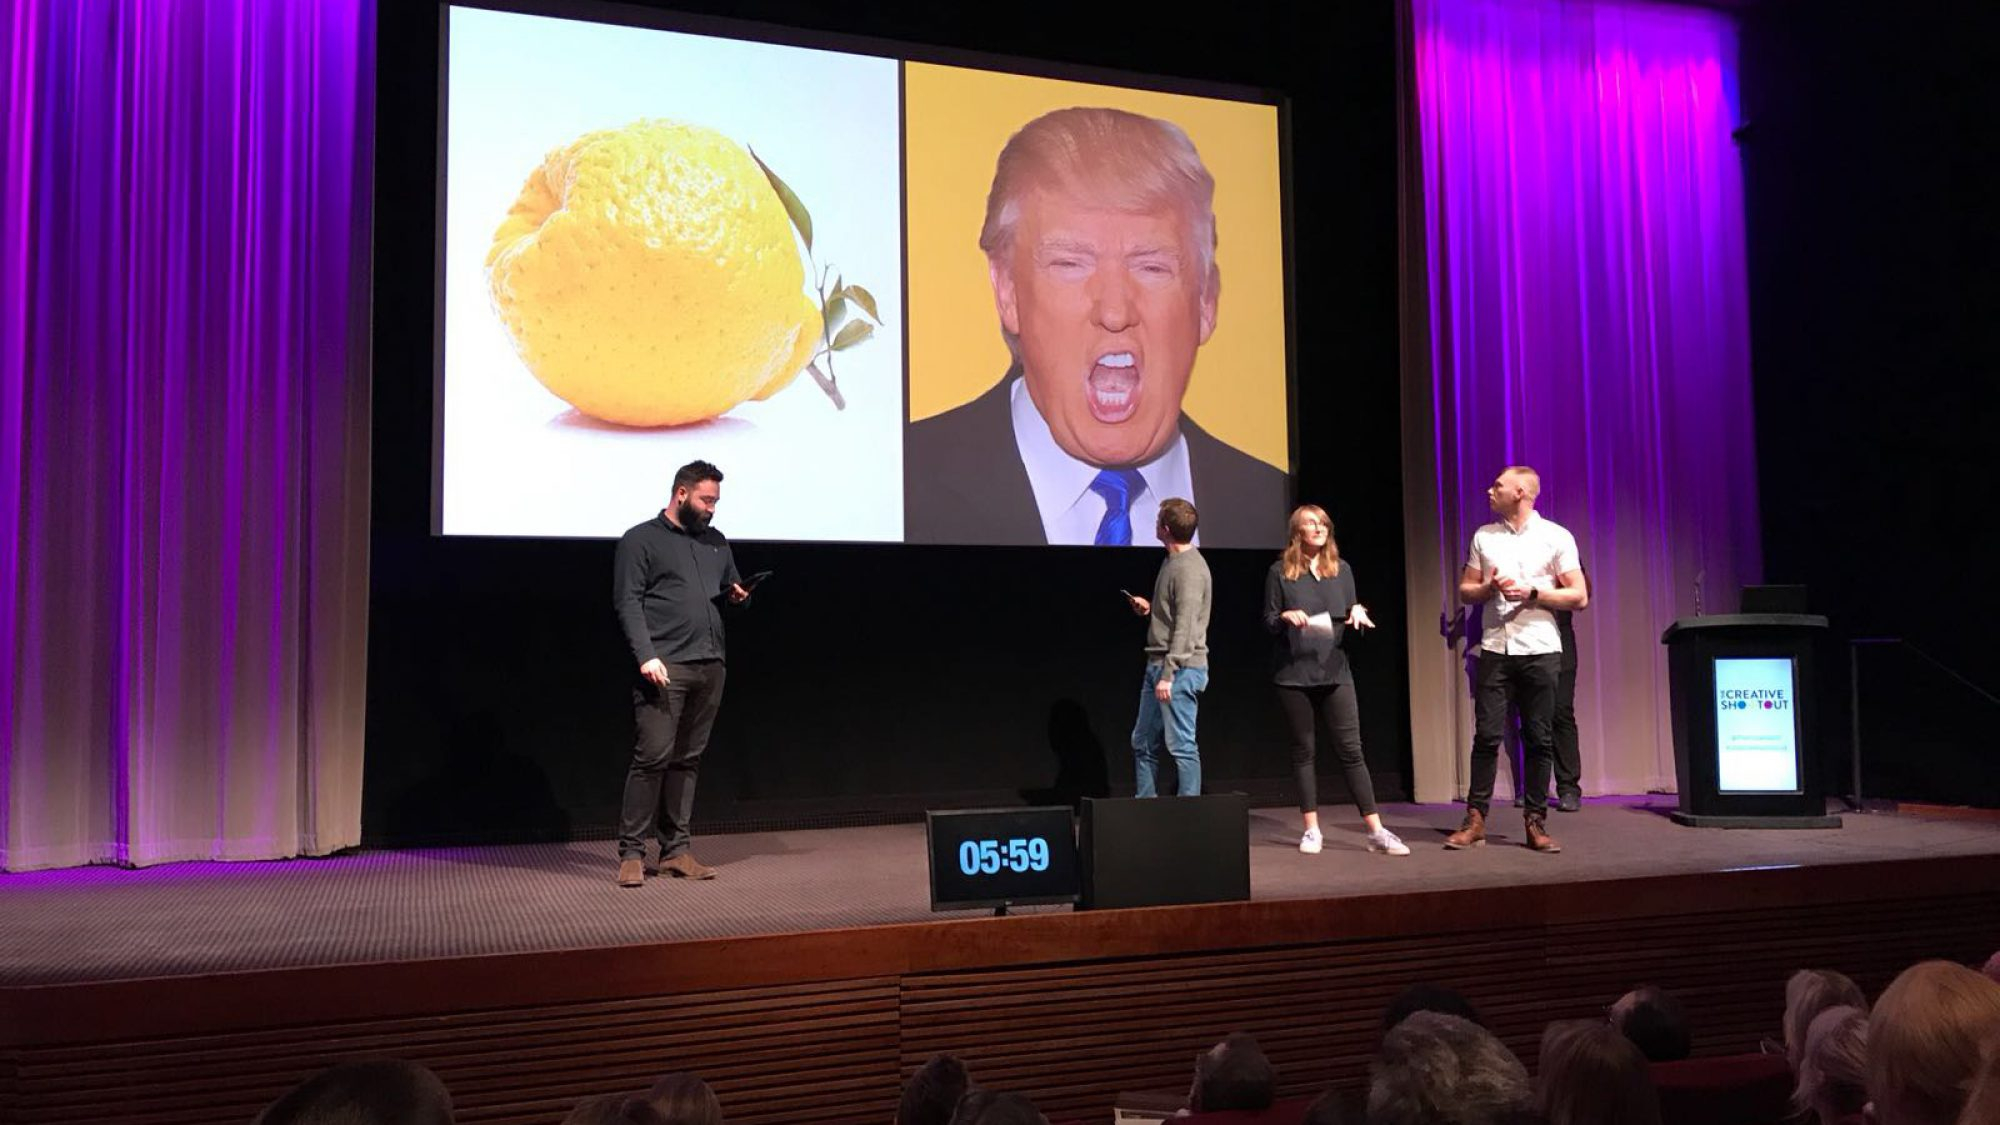 Raw London on stage with FareShare at BAFTA at Creative Shootout 2018